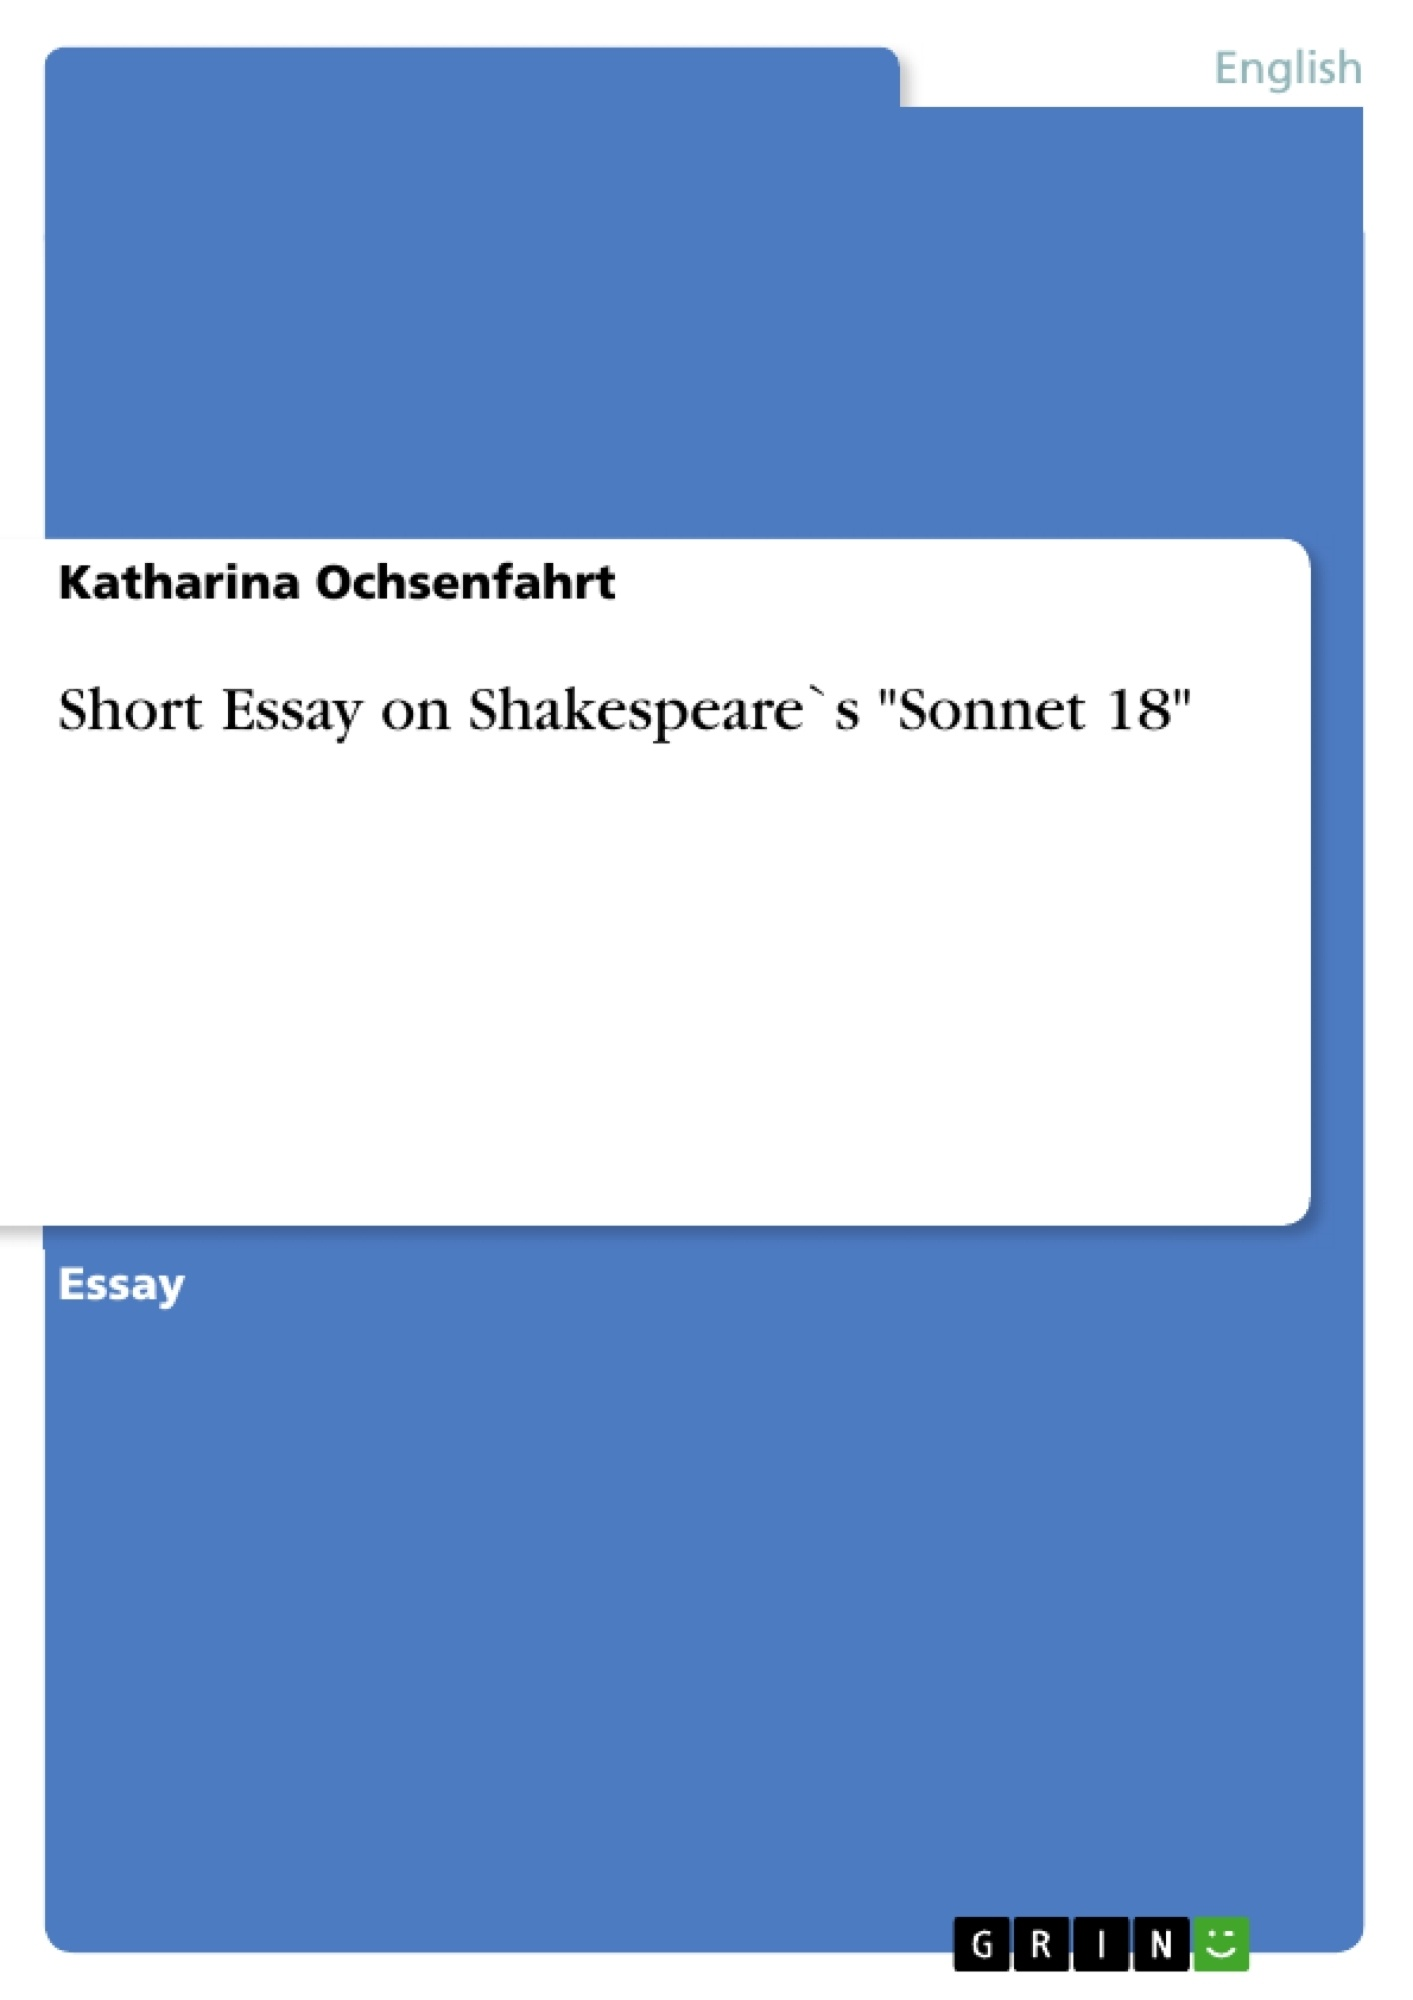 short essay on shakespeare`s sonnet 18 publish your master s upload your own papers earn money and win an iphone 7